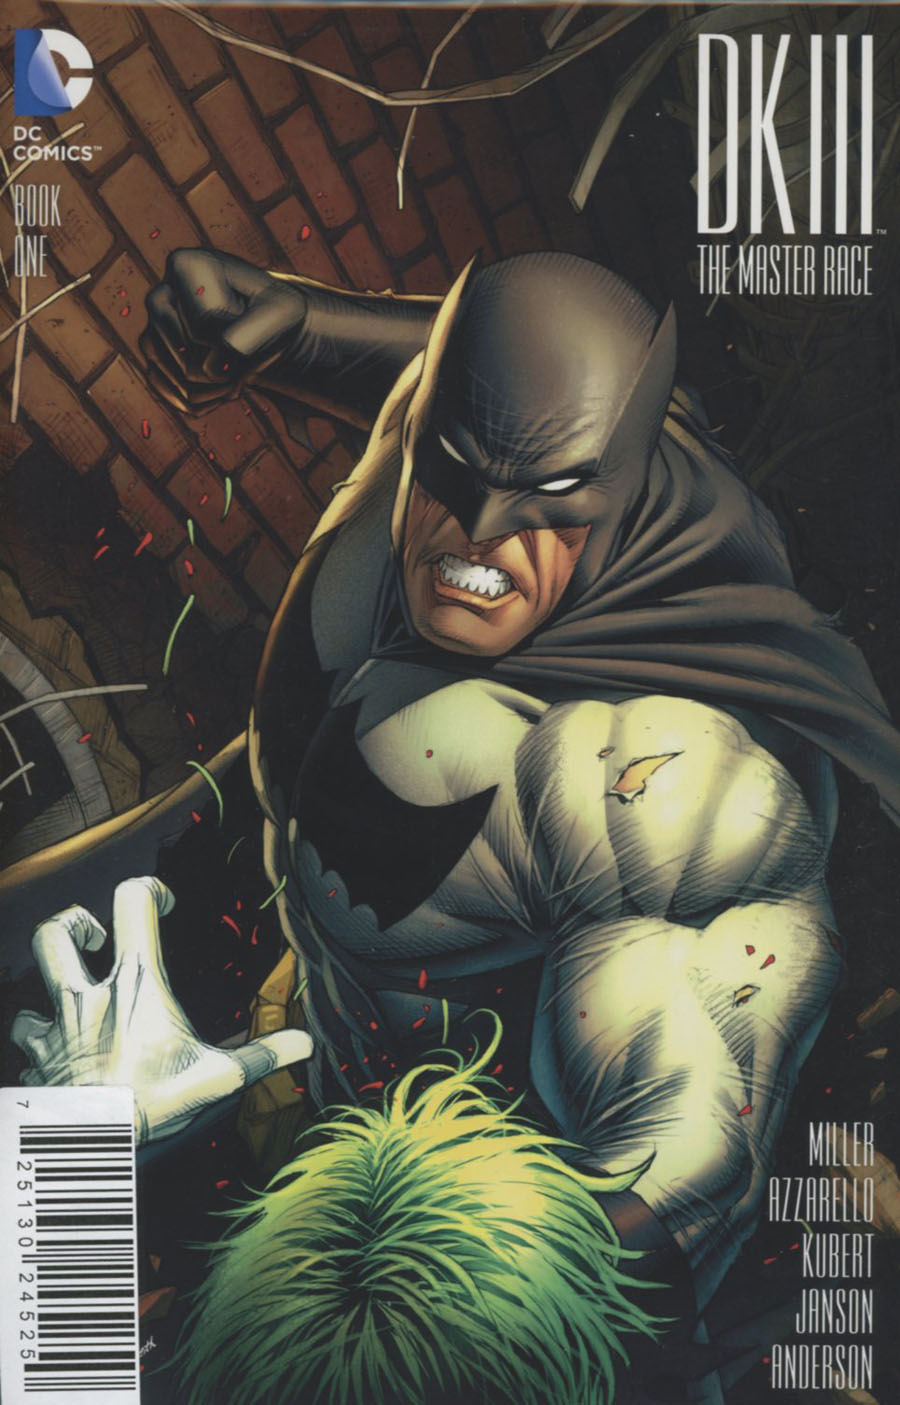 Dark Knight III The Master Race #1 Cover Z-P DF AOD Collectables Exclusive Dale Keown Variant Cover